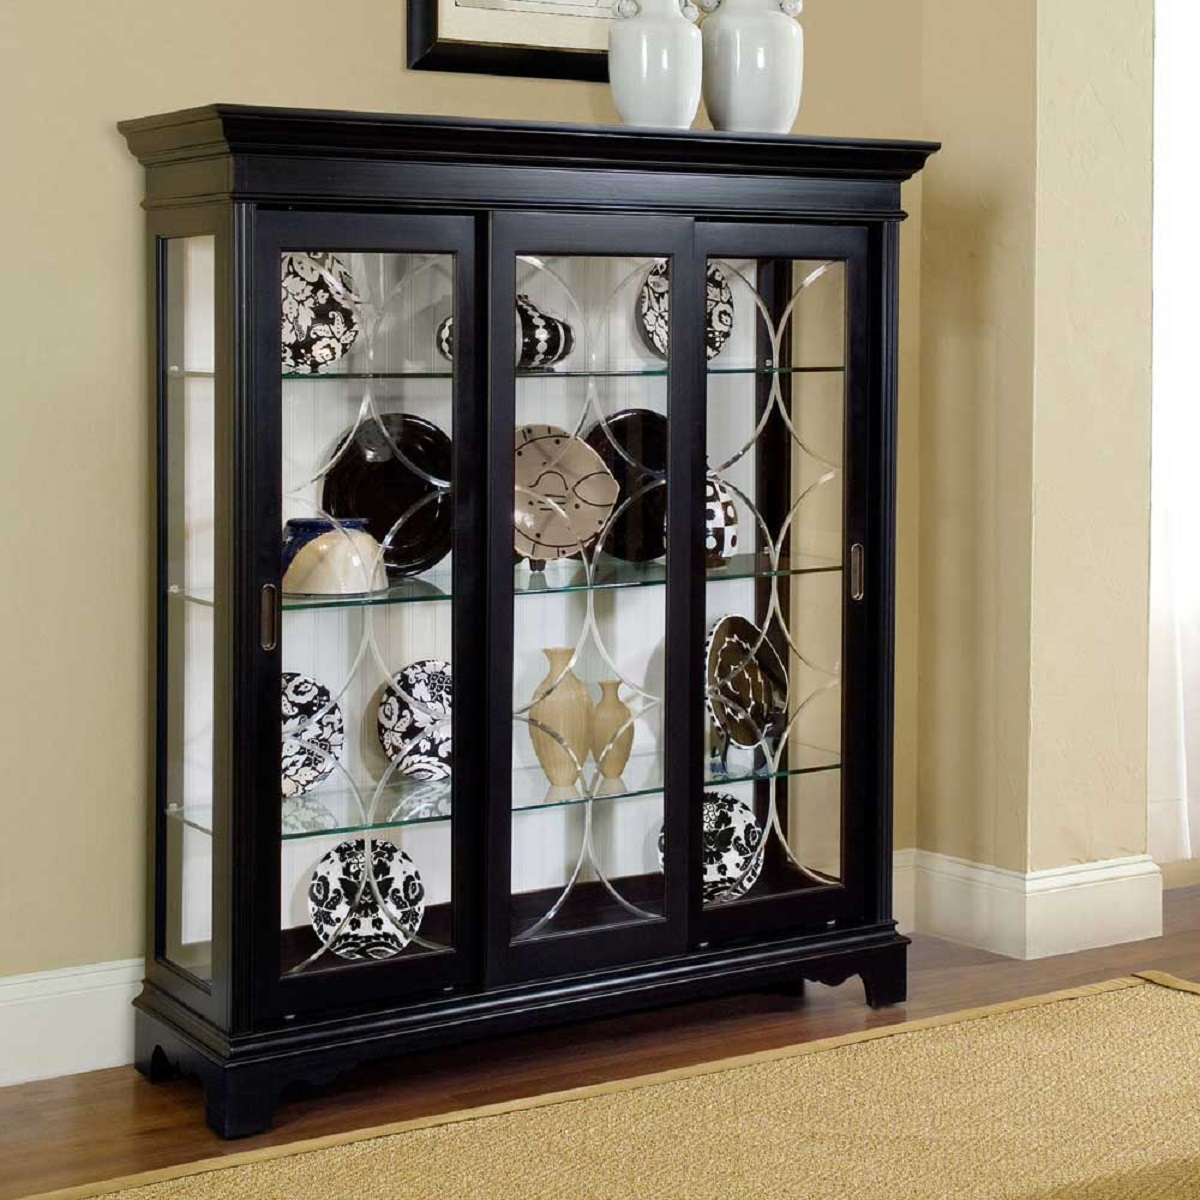 How to buy a Curio Cabinet - Furniture Tutor™